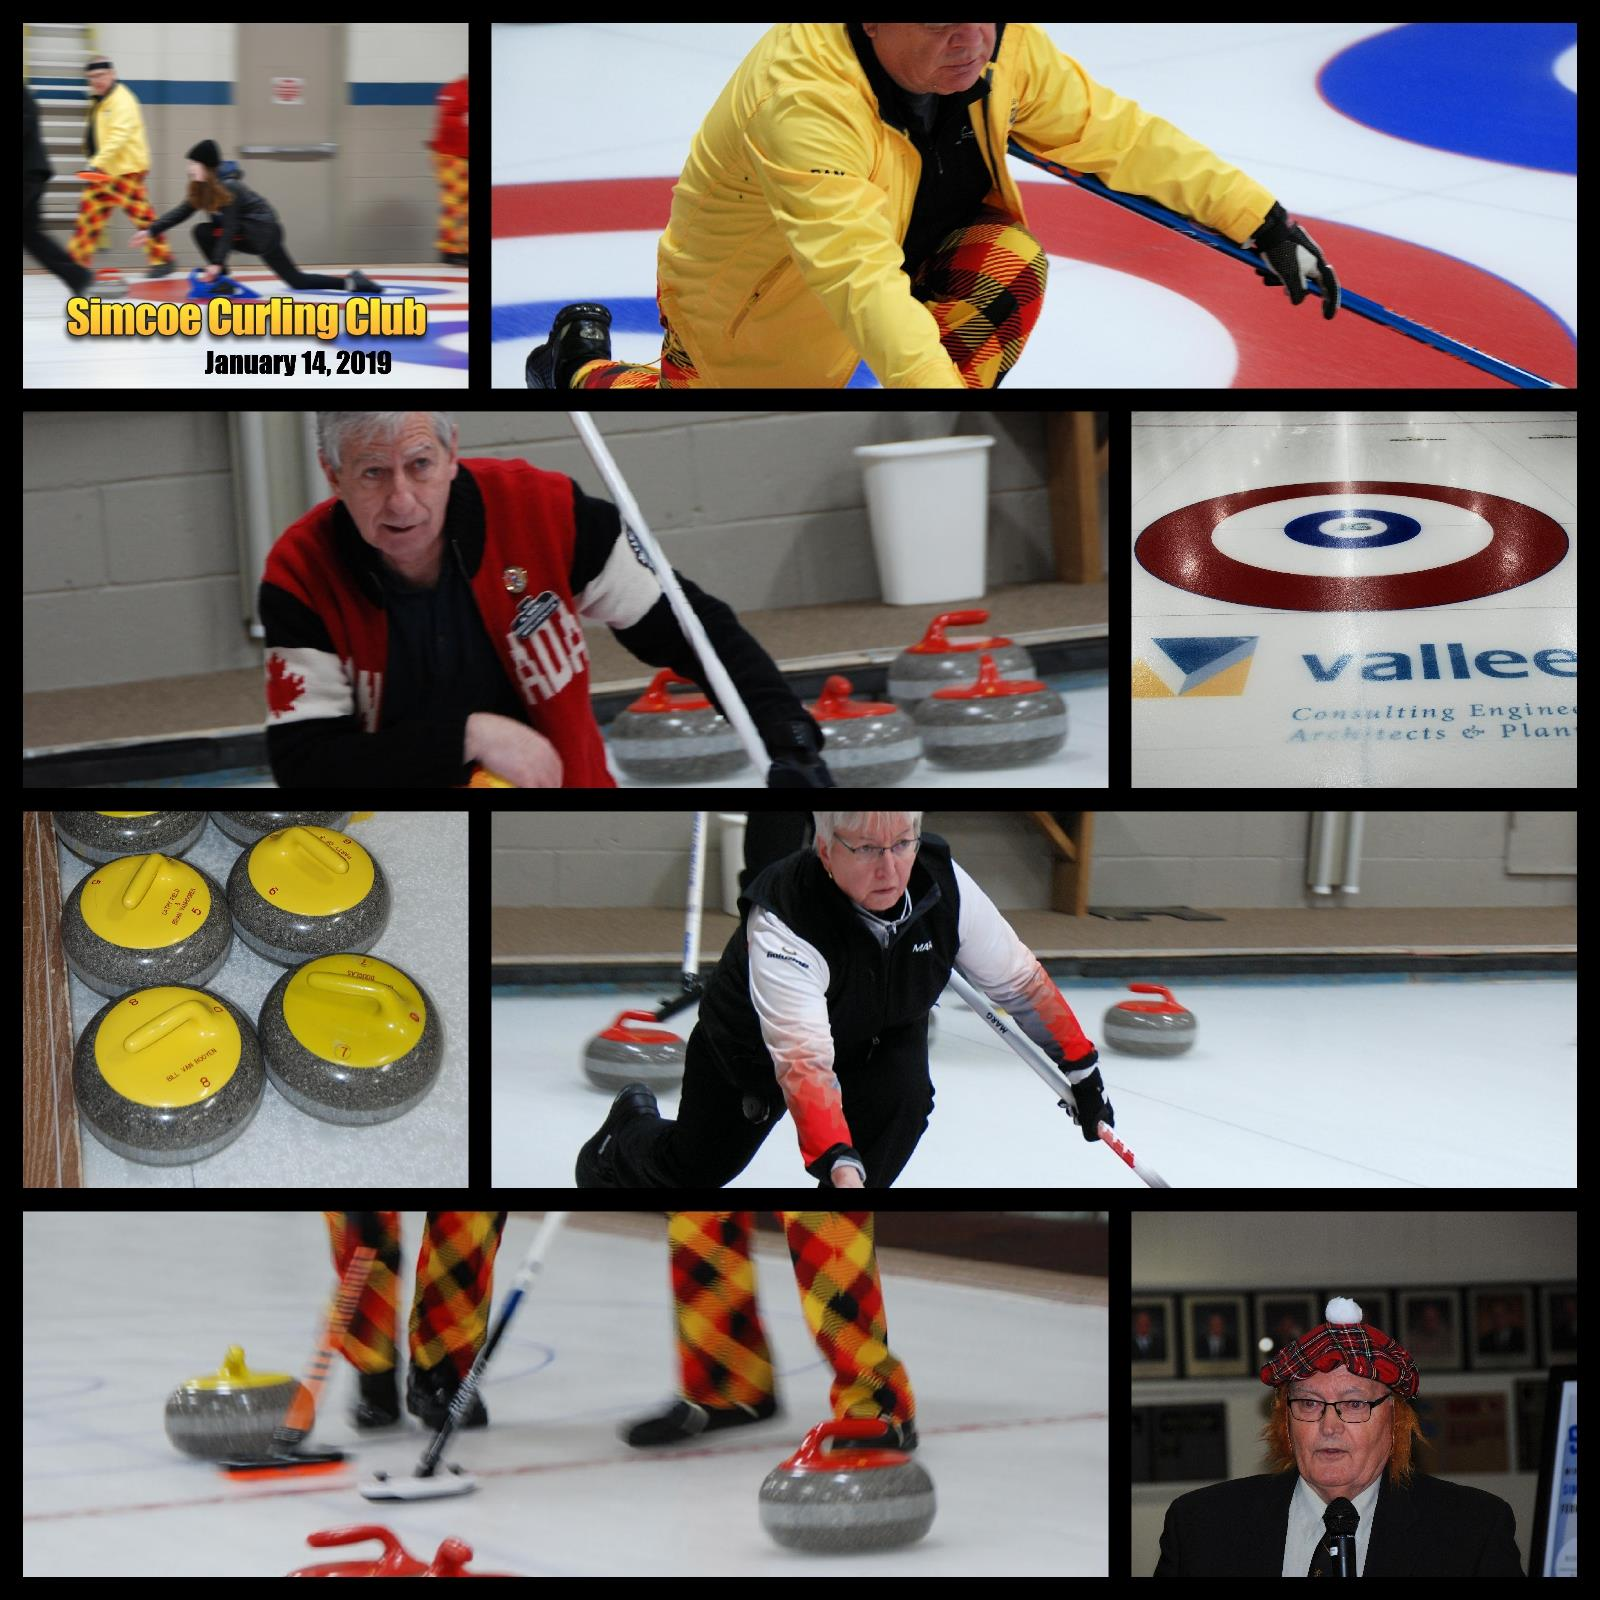 Rotary Curlers, January 14, 2019